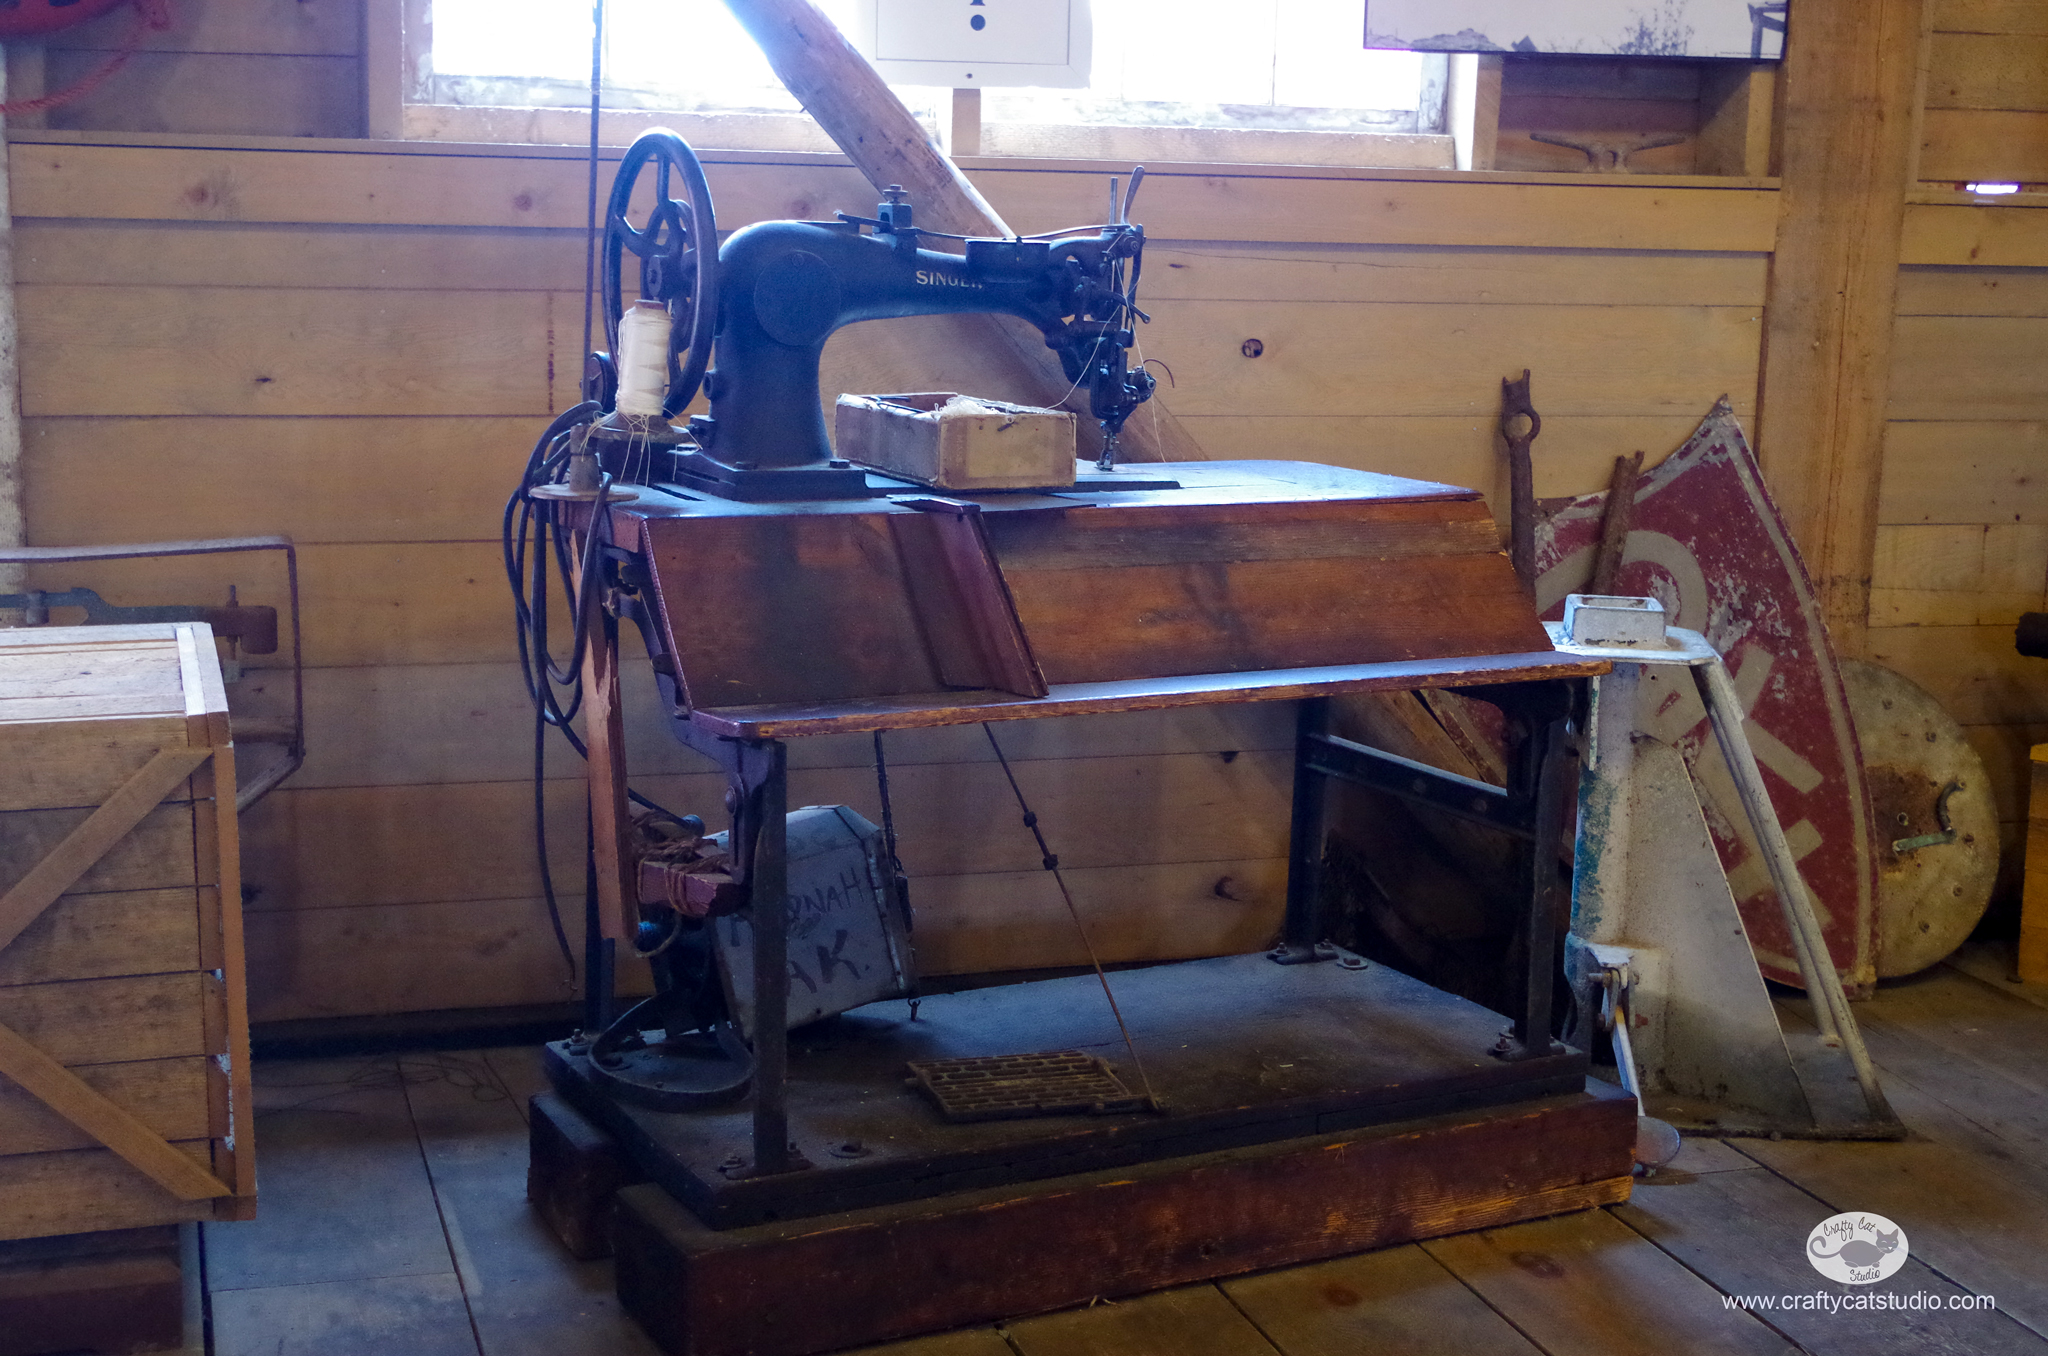 A vintage industrial Singer sewing machine on display in the Cannery Museum on Icy Strait Point